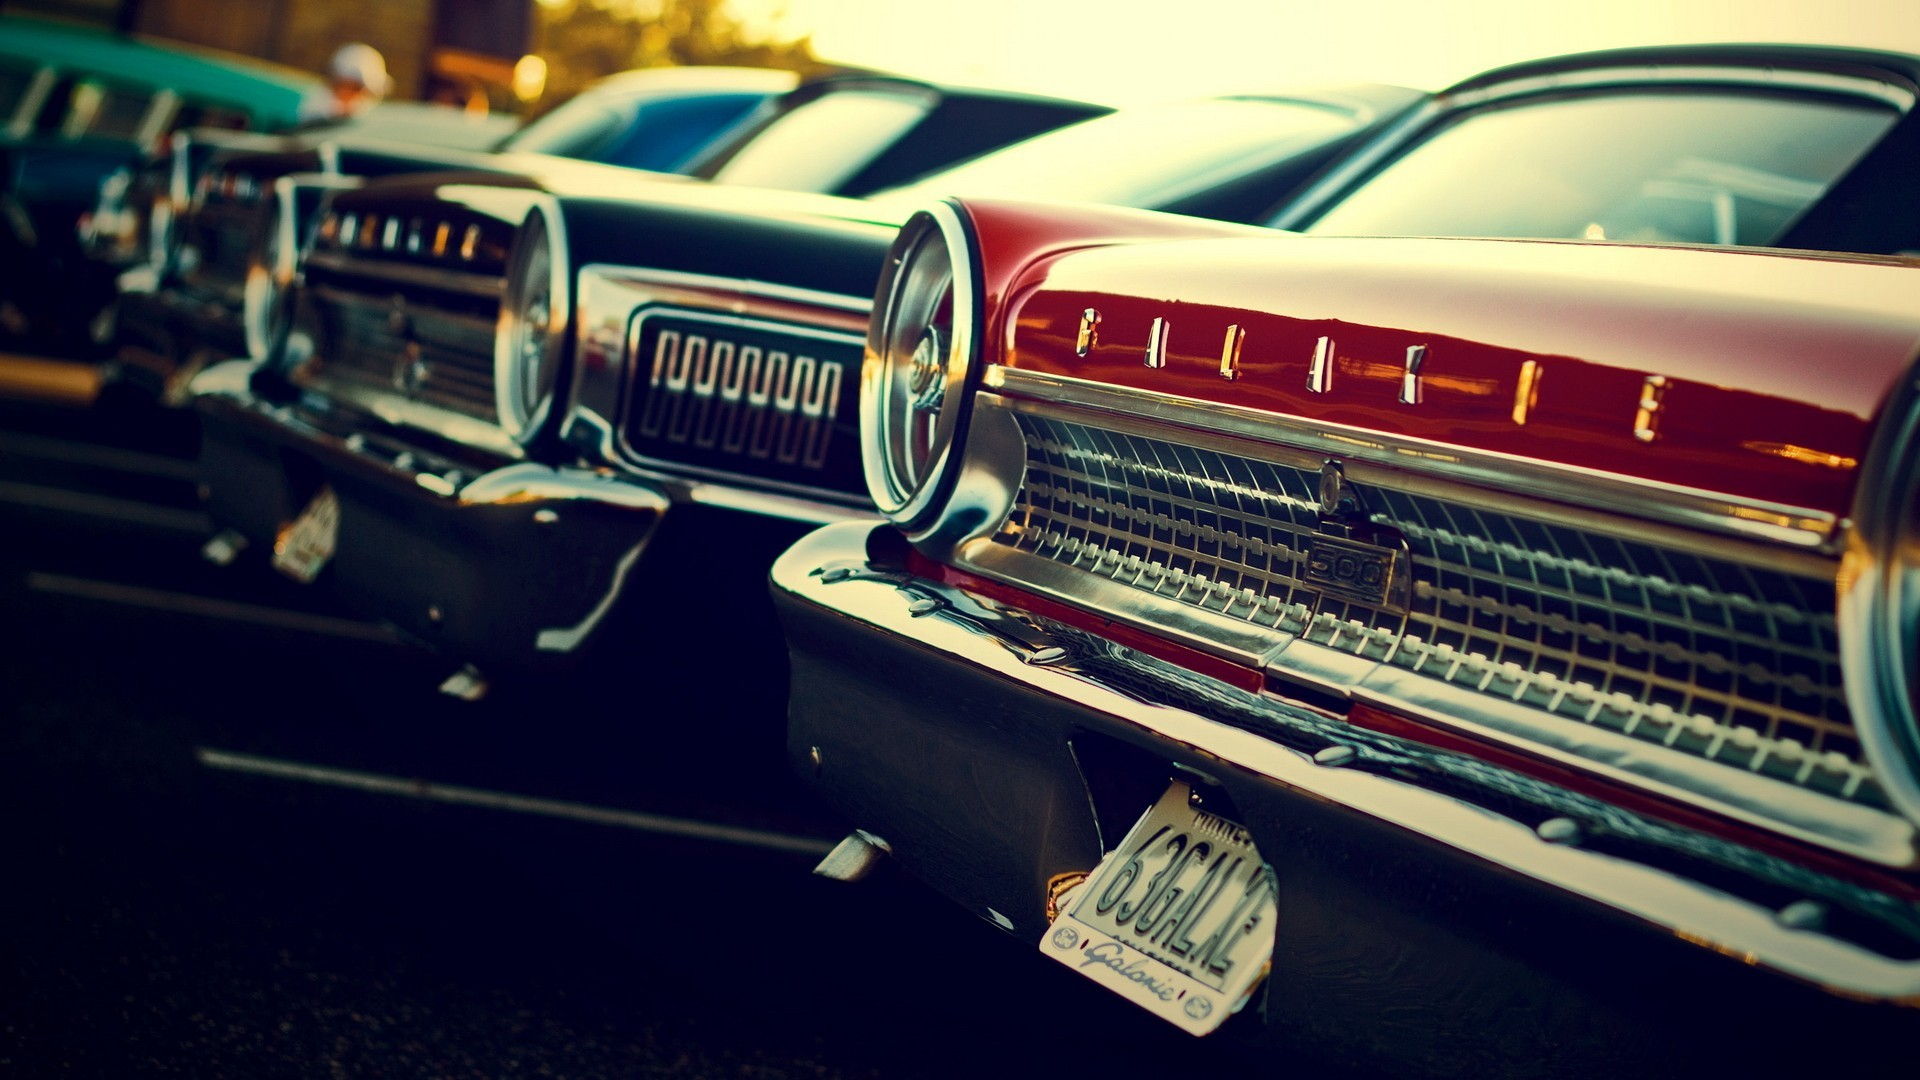 Muscle Cars Wallpapers 1080p Cool Car Wallpapers Hd 1080p 72 Images